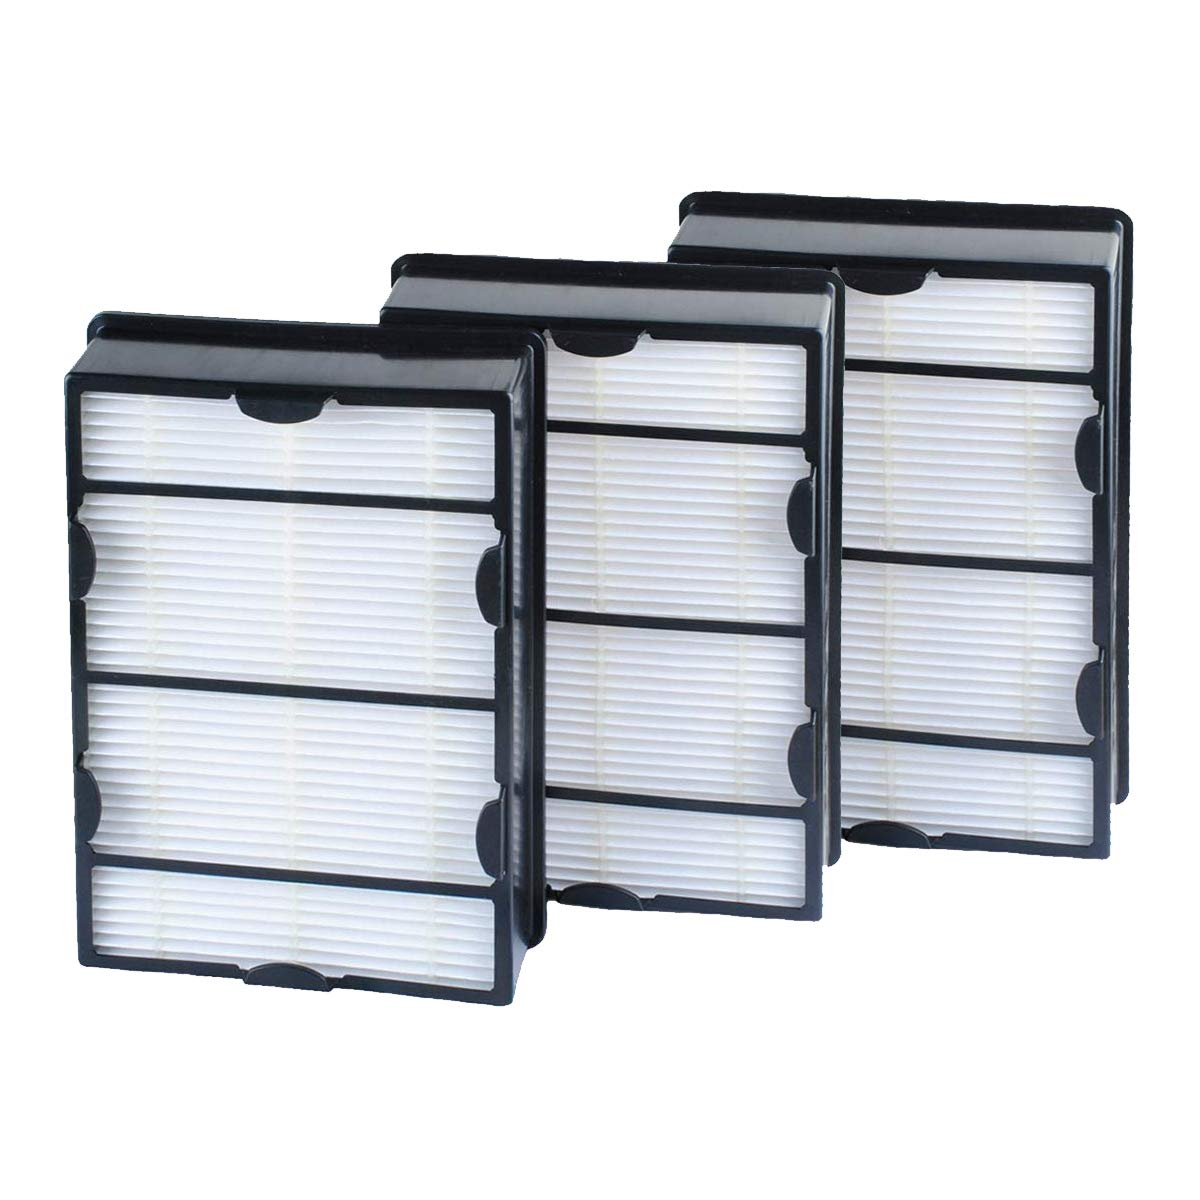 Poweka HAPF600 True HEPA Filter 3 Pack Replace for Holmes B Filter - Compatiable with HAPF600D HAP615 HAP625 HAP650 HAP675RC HAP725 HAP750 HAP1625 HAP1650 HAP1725 HAP1750 Air Purifiers